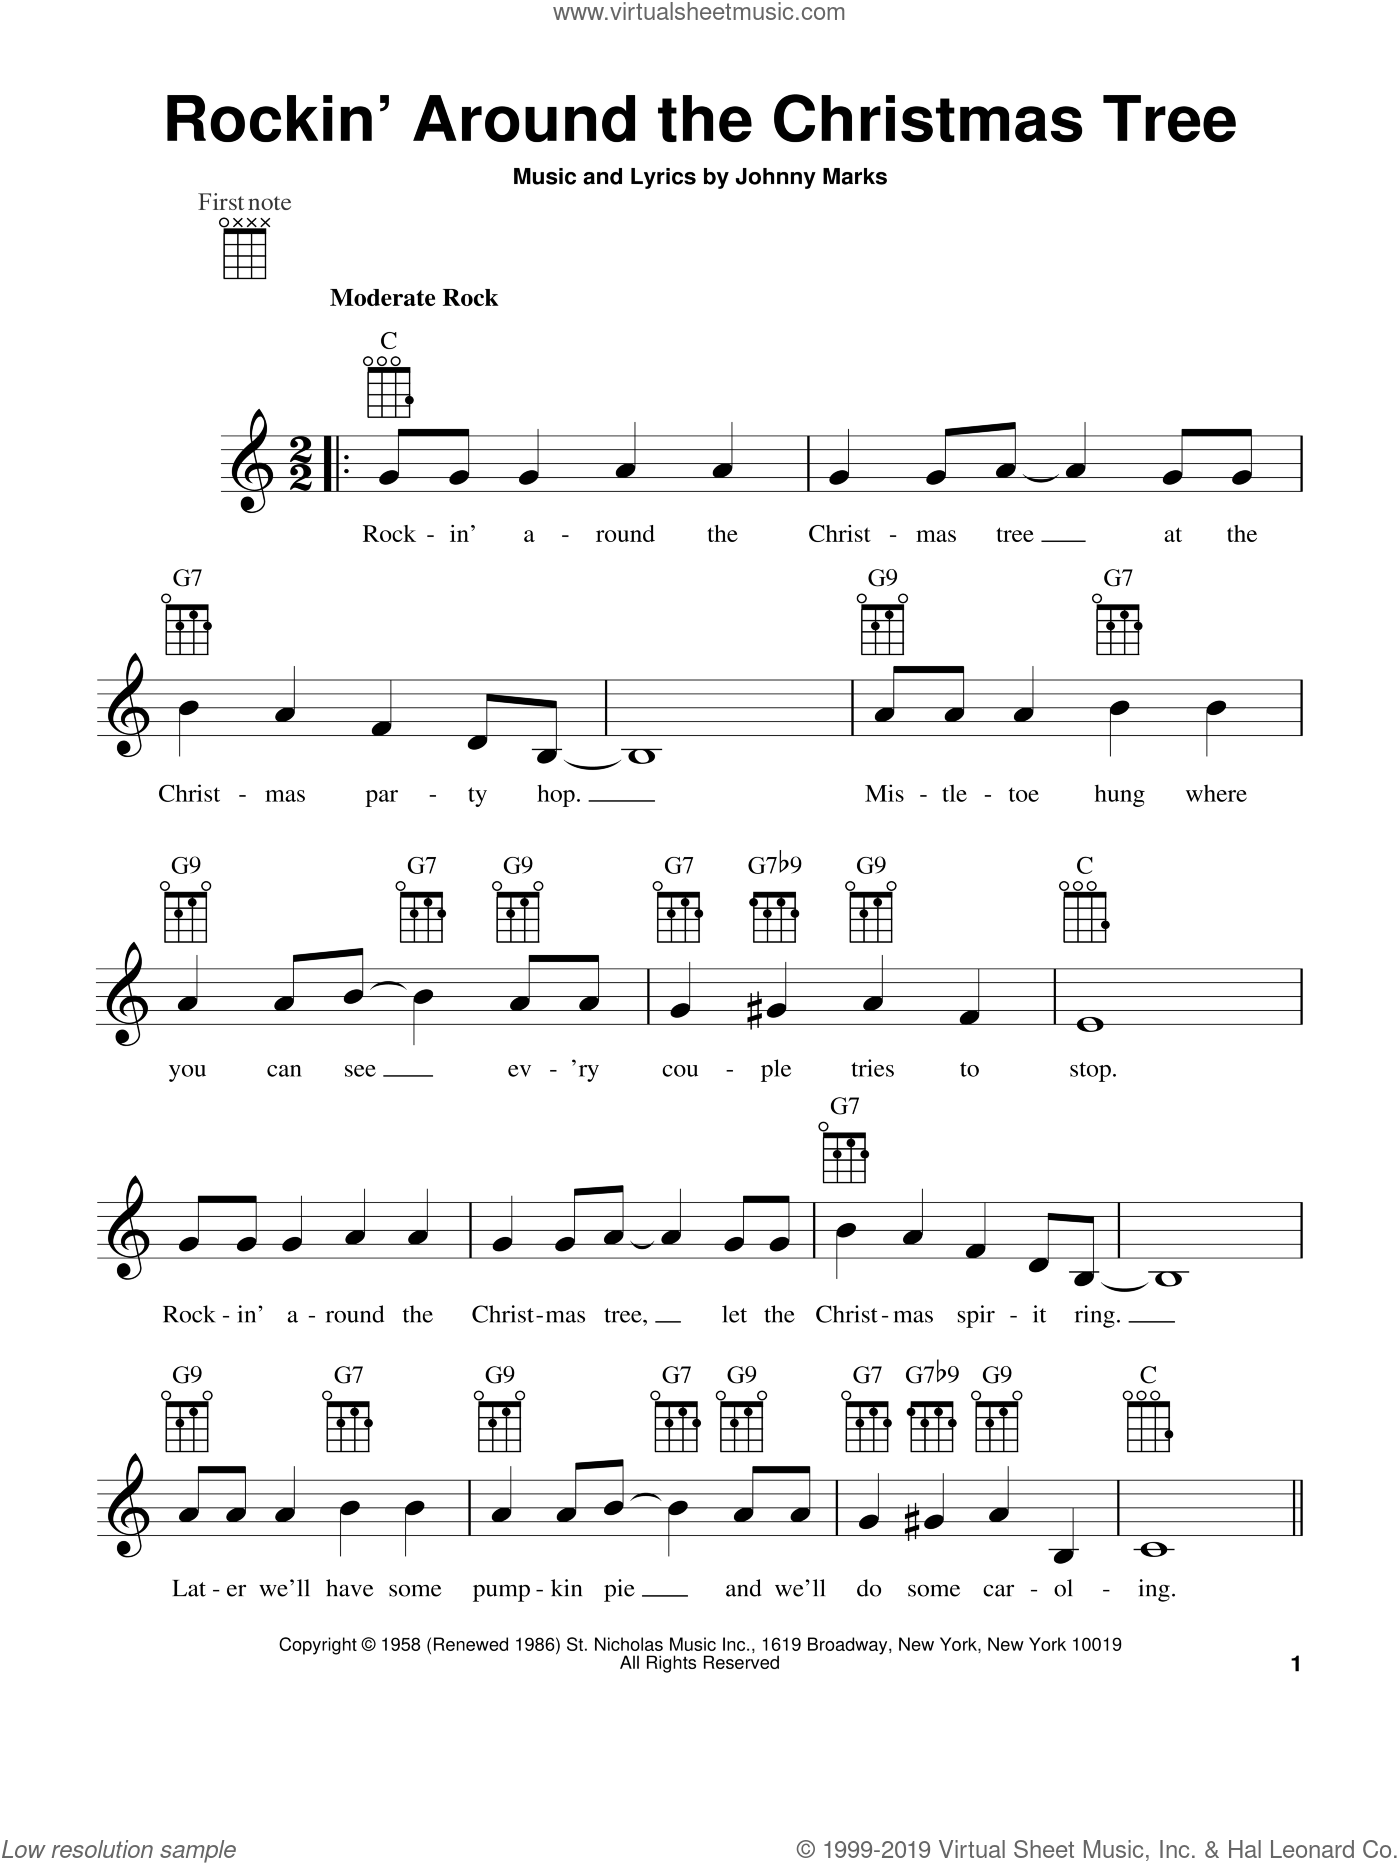 Rockin' Around The Christmas Tree sheet music for ukulele by Brenda Lee and Johnny Marks, intermediate skill level